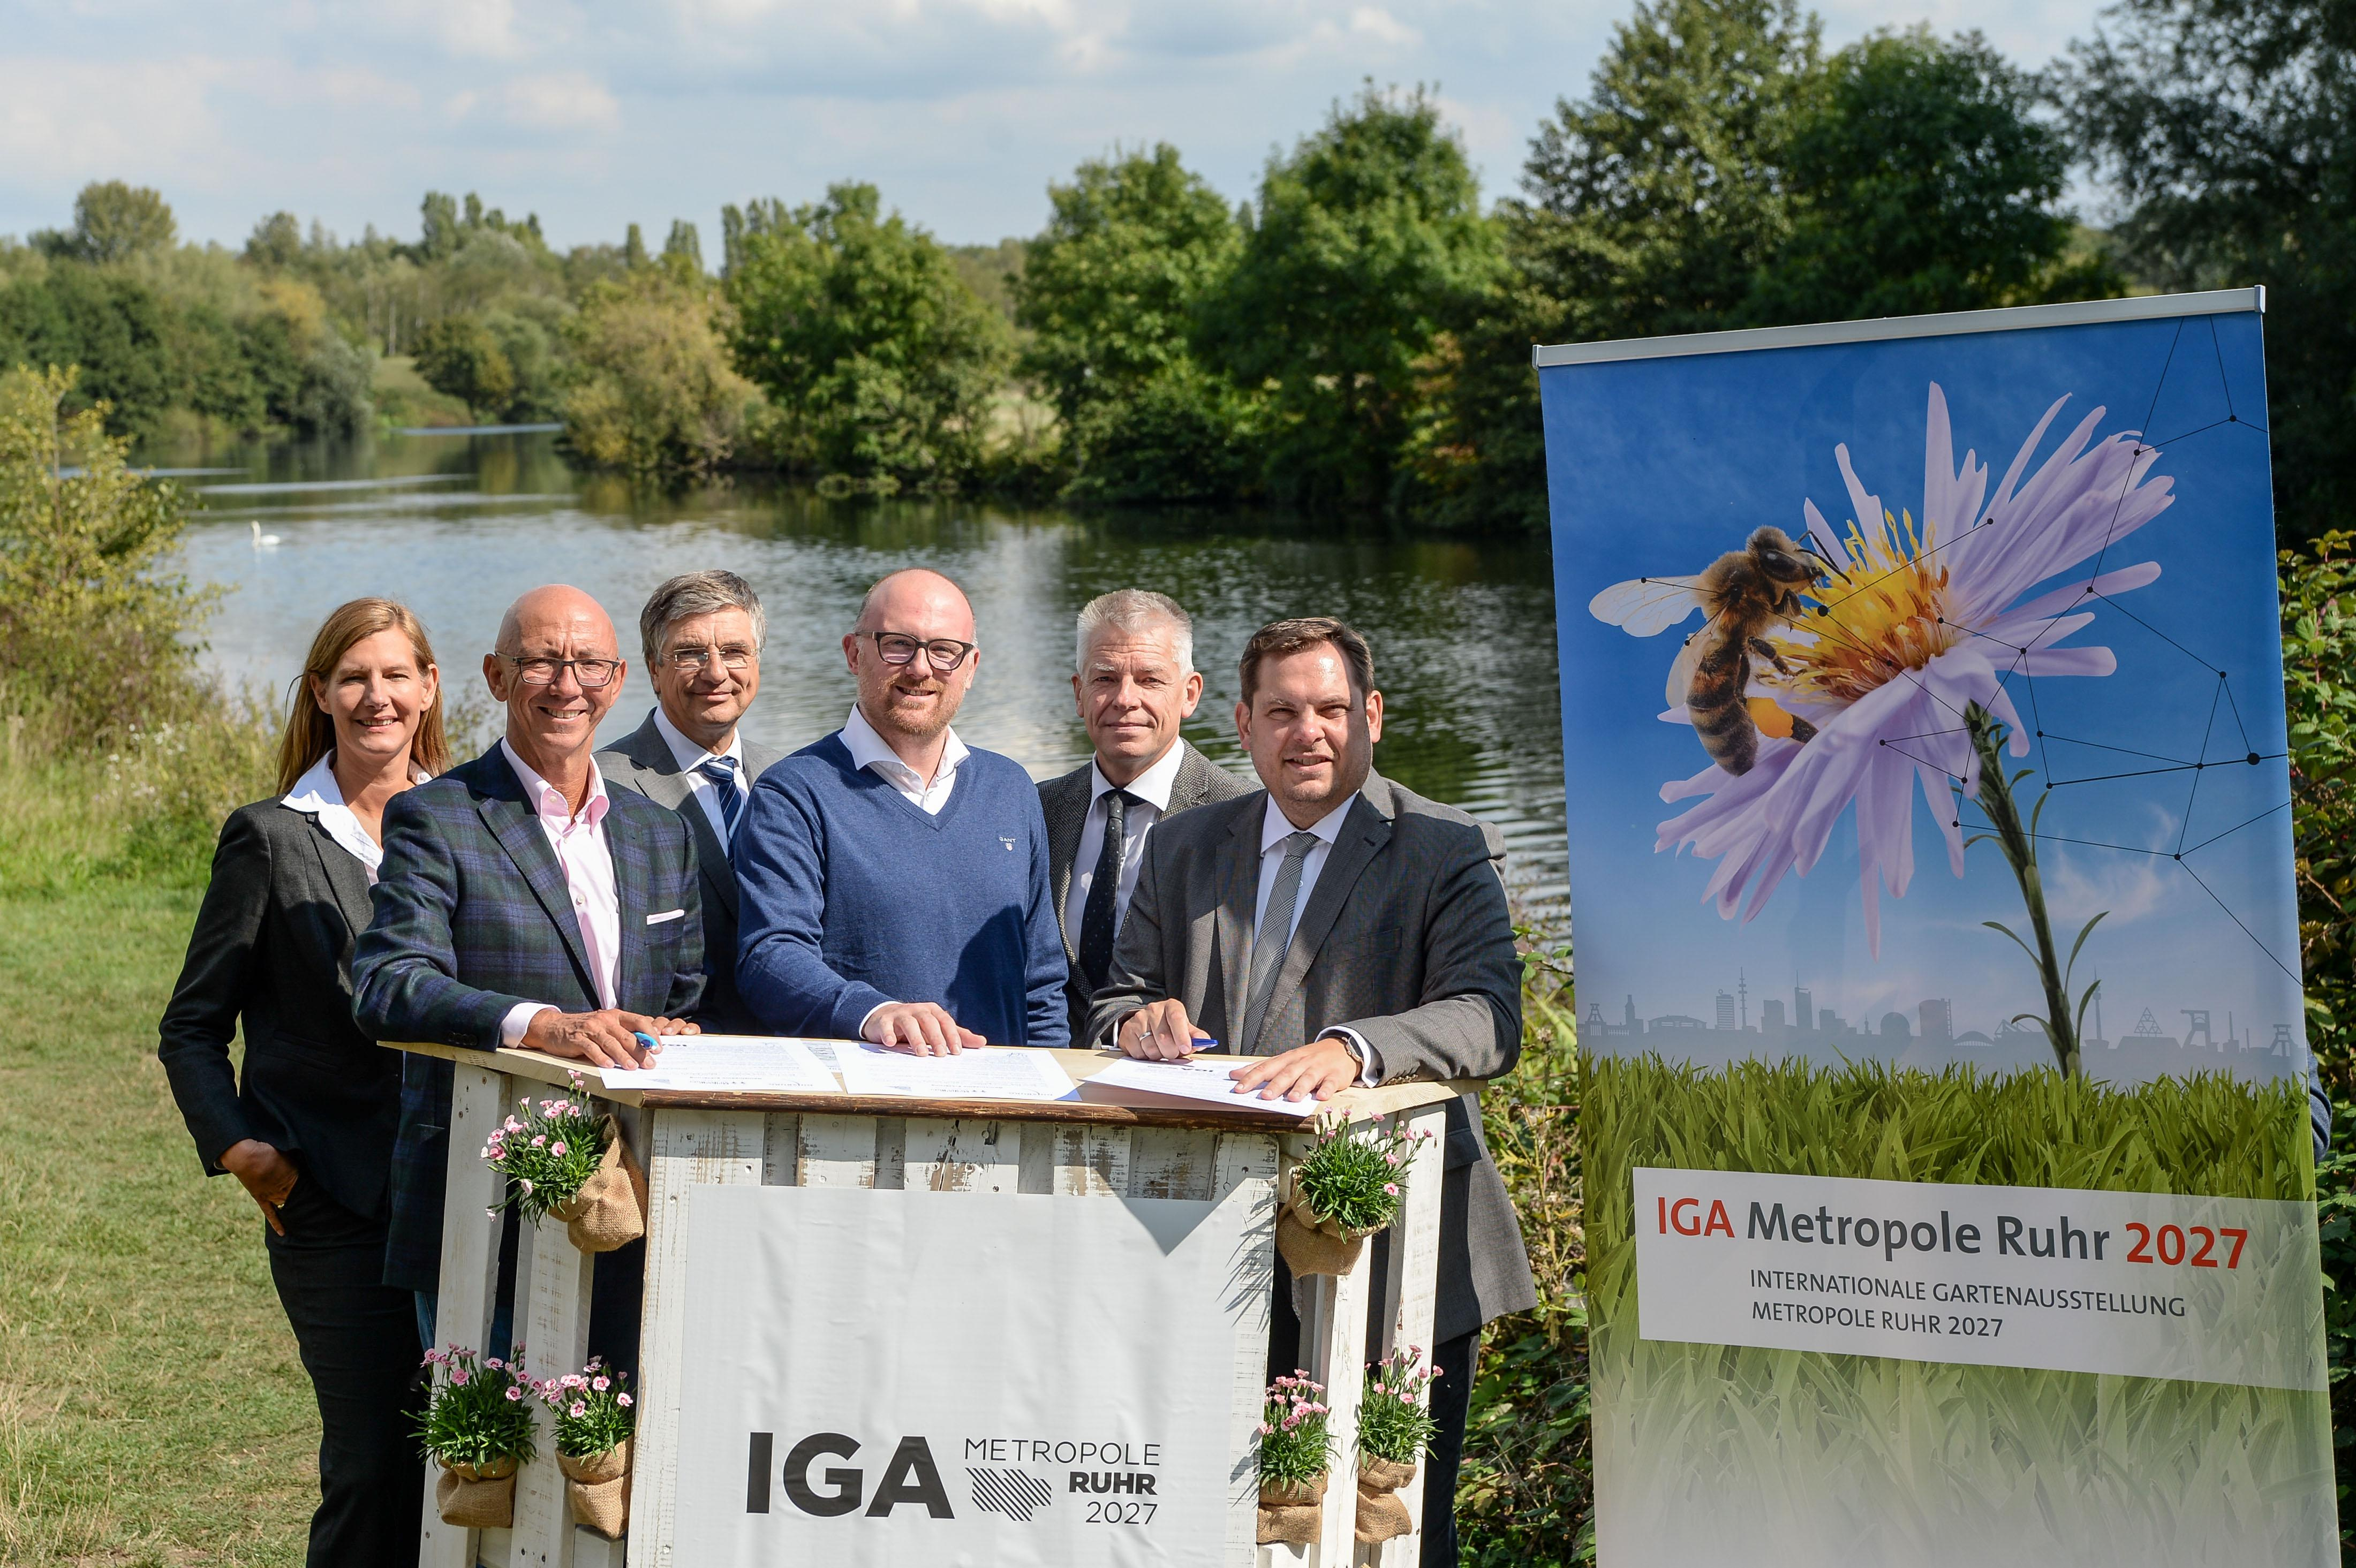 Internationale Gartenausstellung Metropole Ruhr 2027